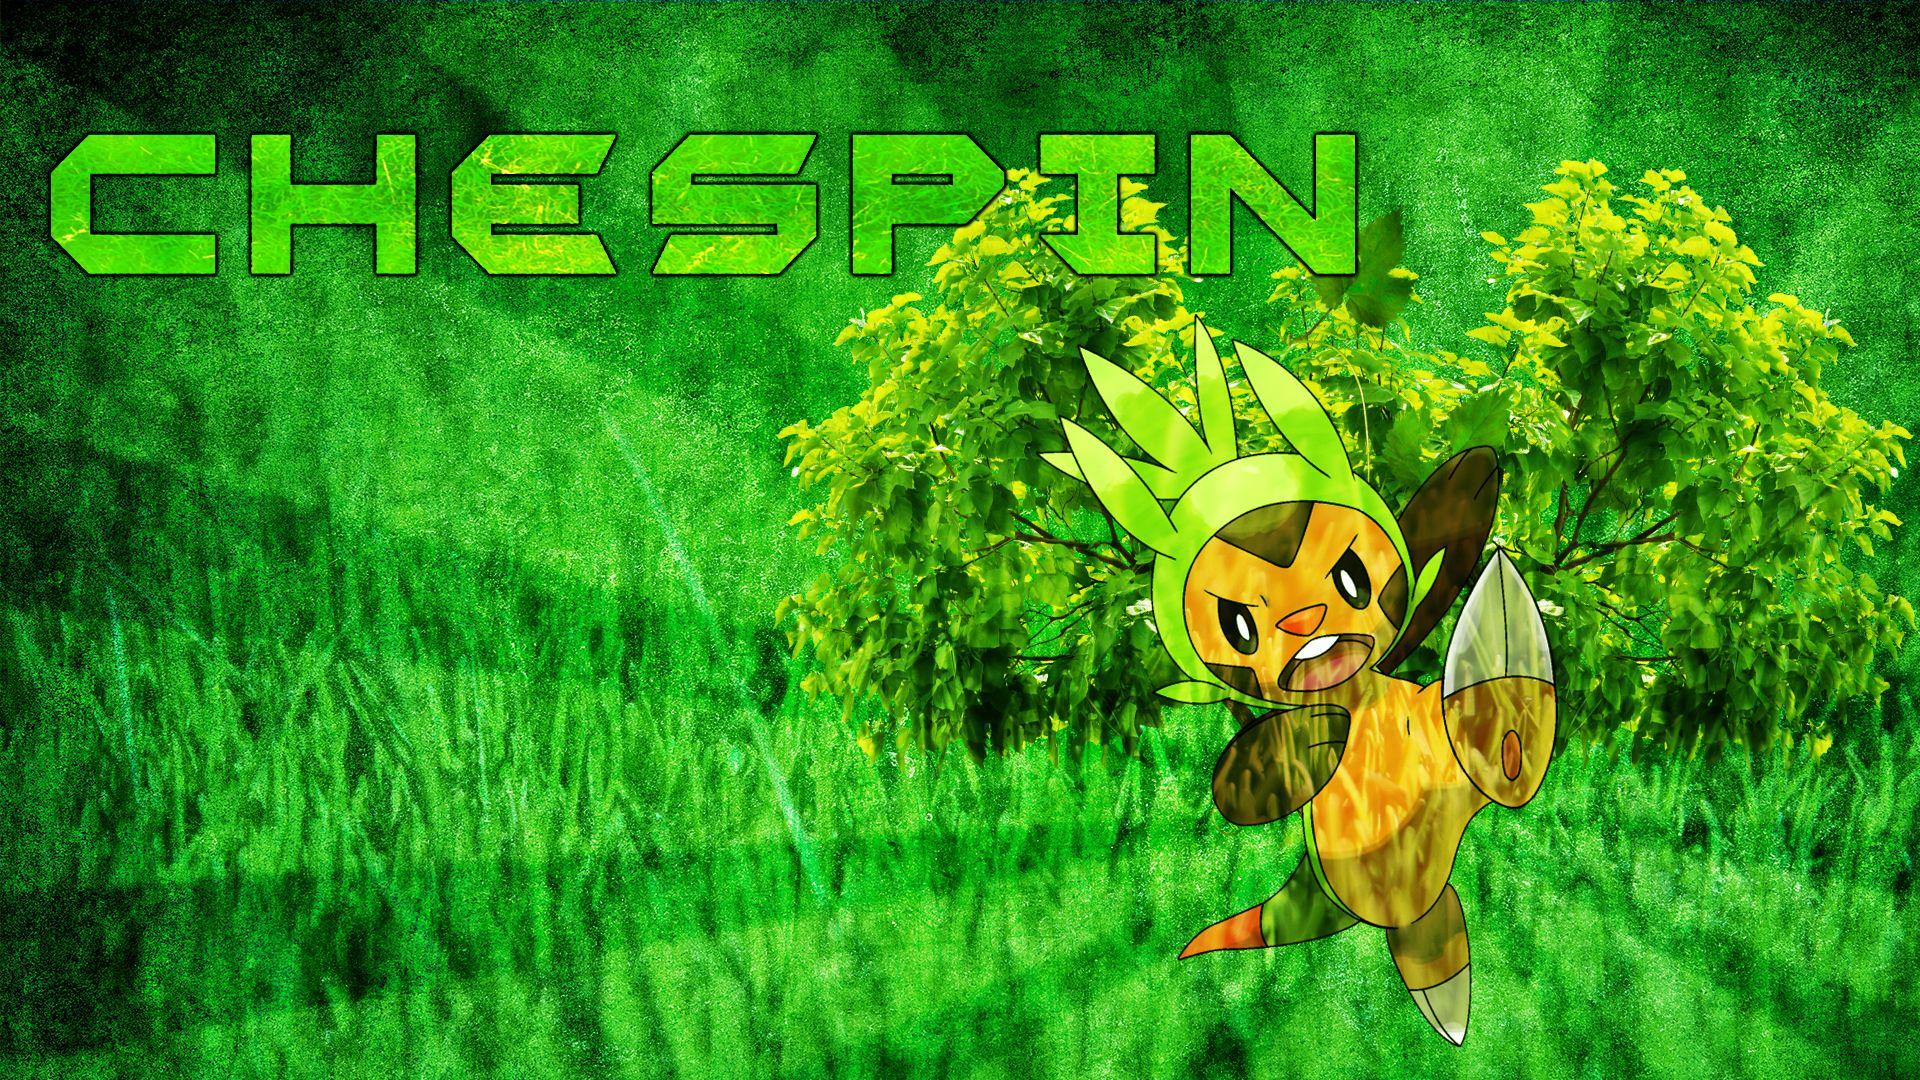 Chespin Wallpaper by MediaCriggz on DeviantArt